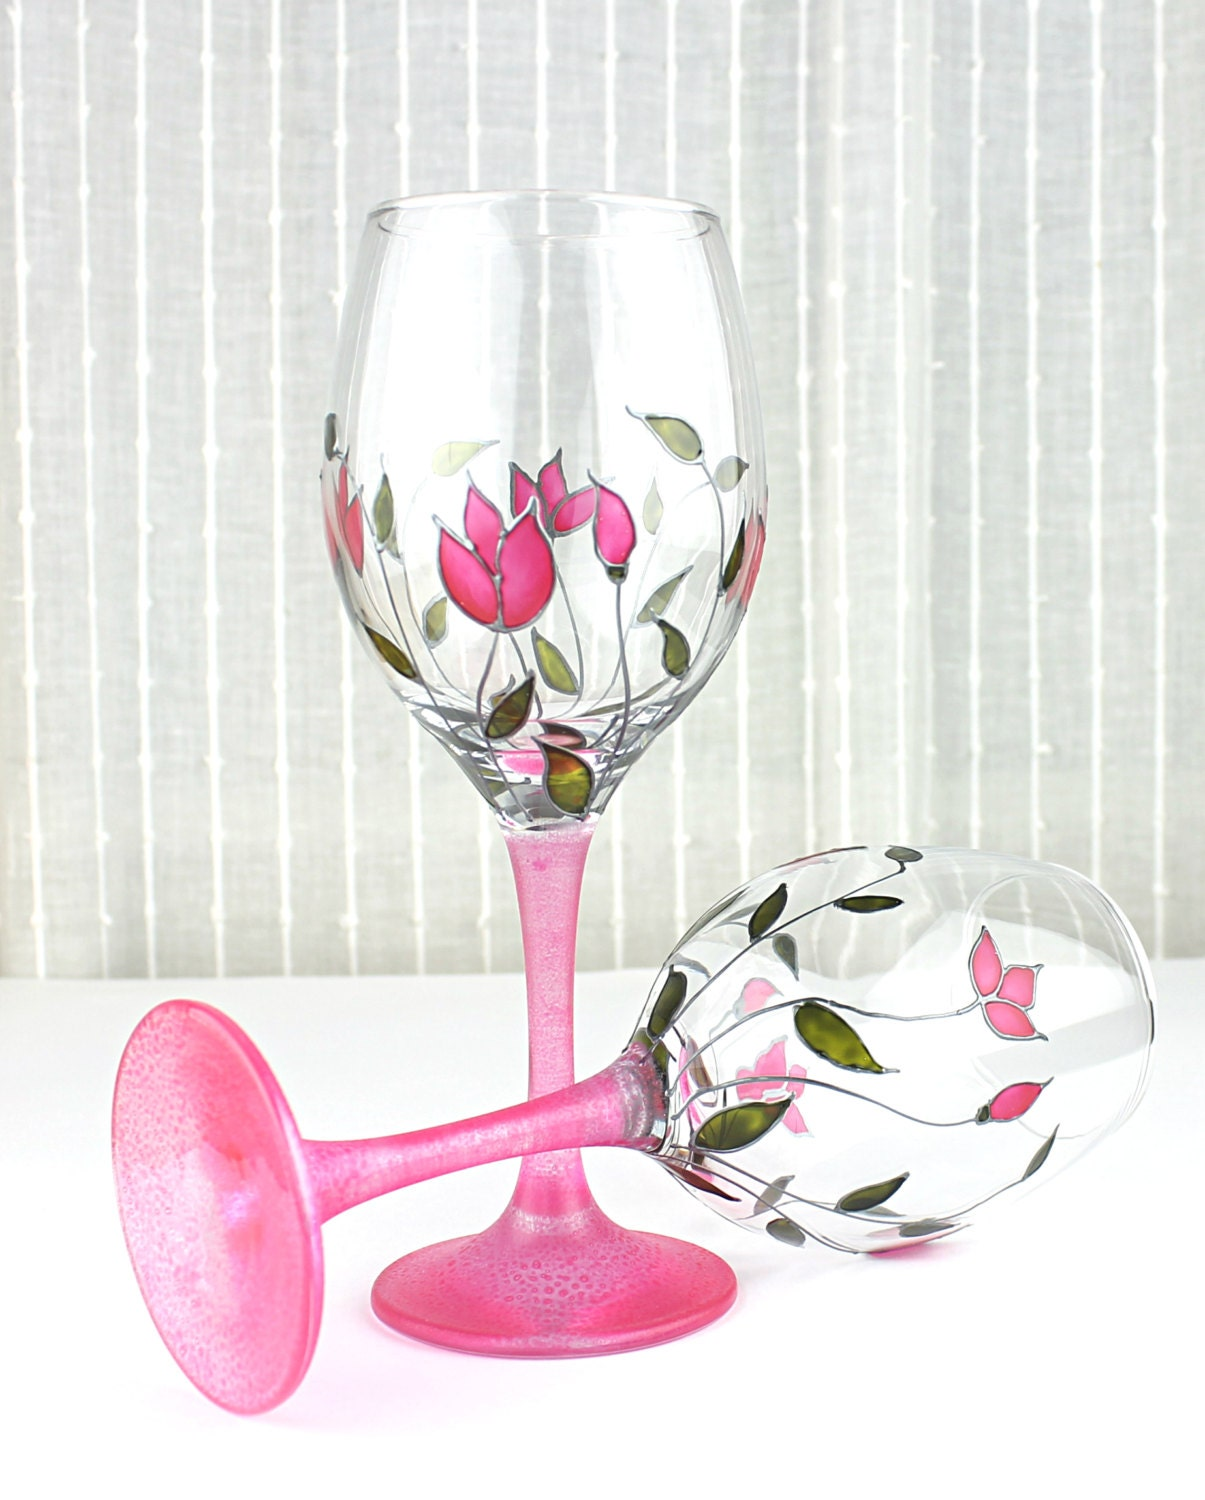 Wine Glasses With Pink Tulips Design Wedding Glasses Floral